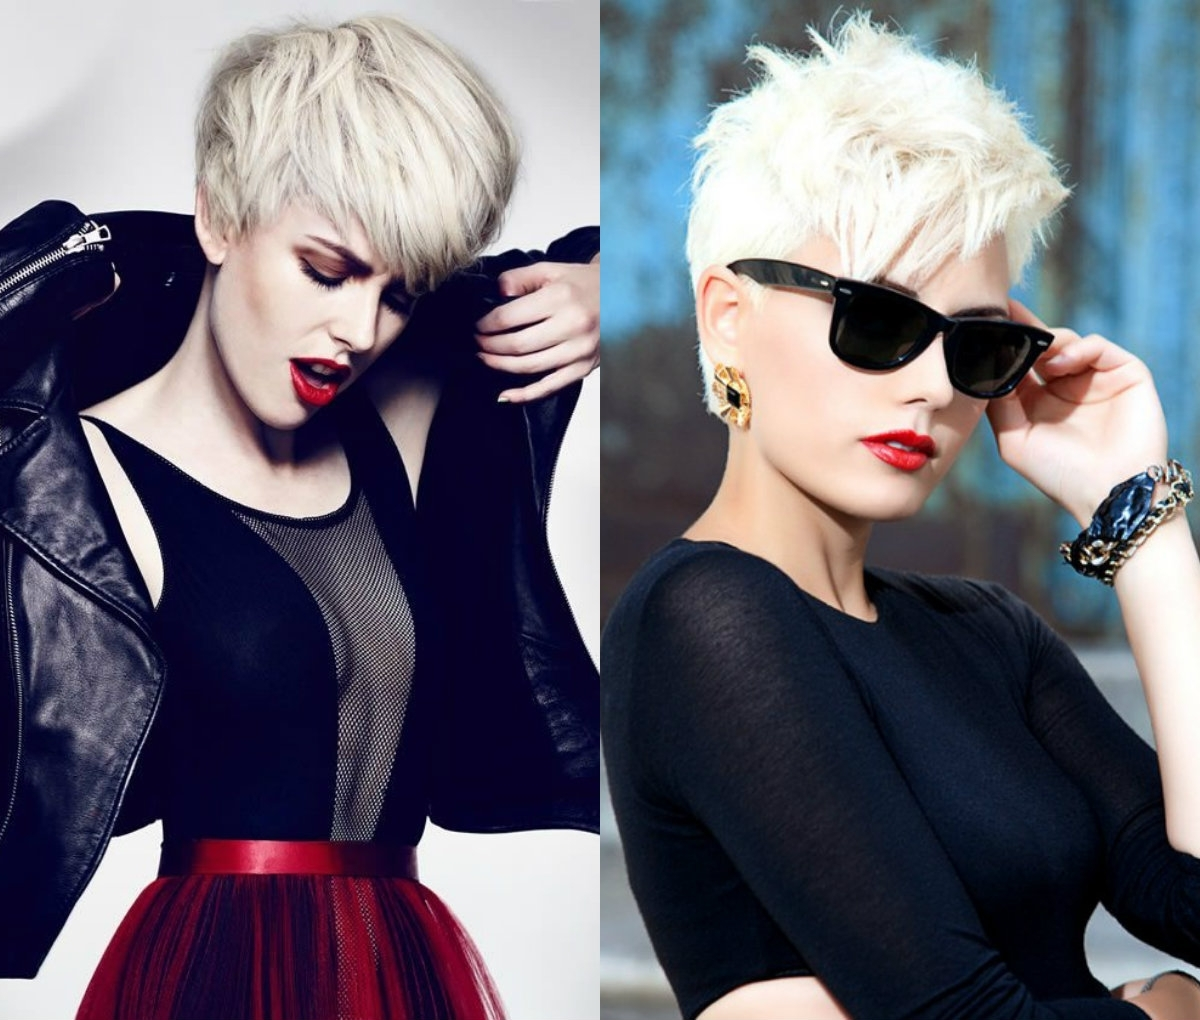 Super Extravagant Pixie Haircuts For Short Hair Lovers | Hairstyles Throughout Current Bleach Blonde Pixie Haircuts (View 15 of 15)